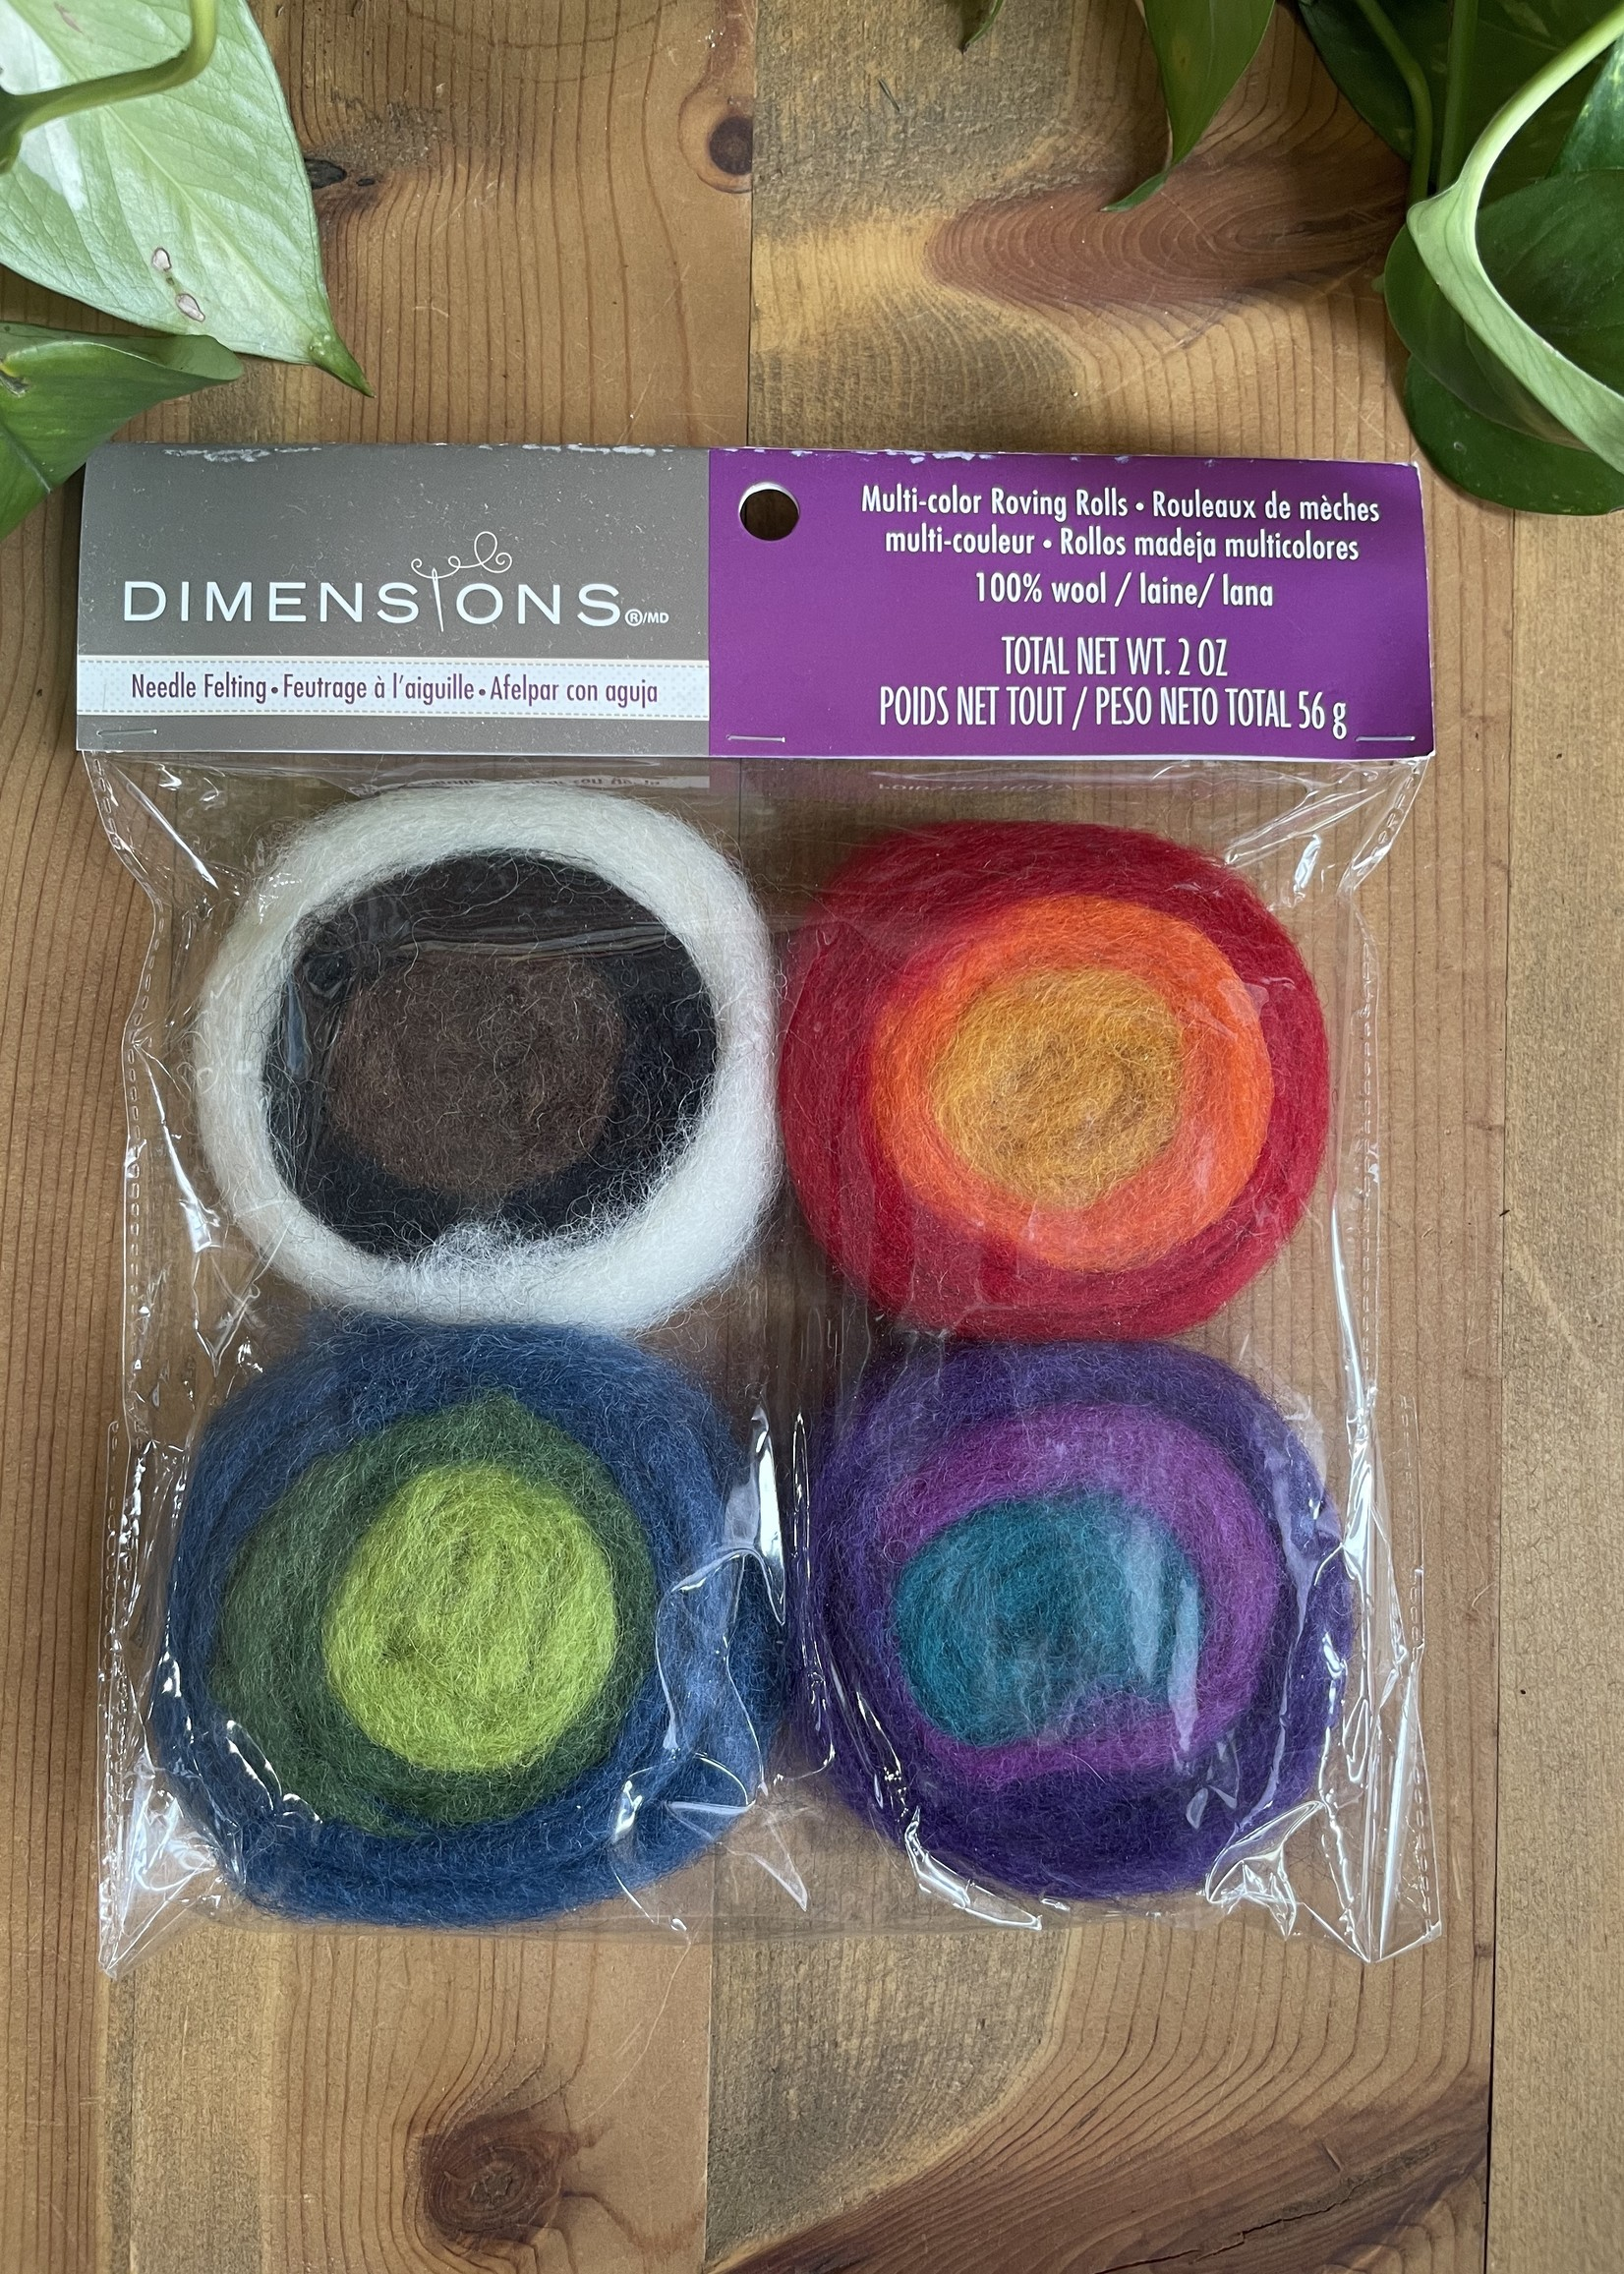 Dimensions multi color roving rolls